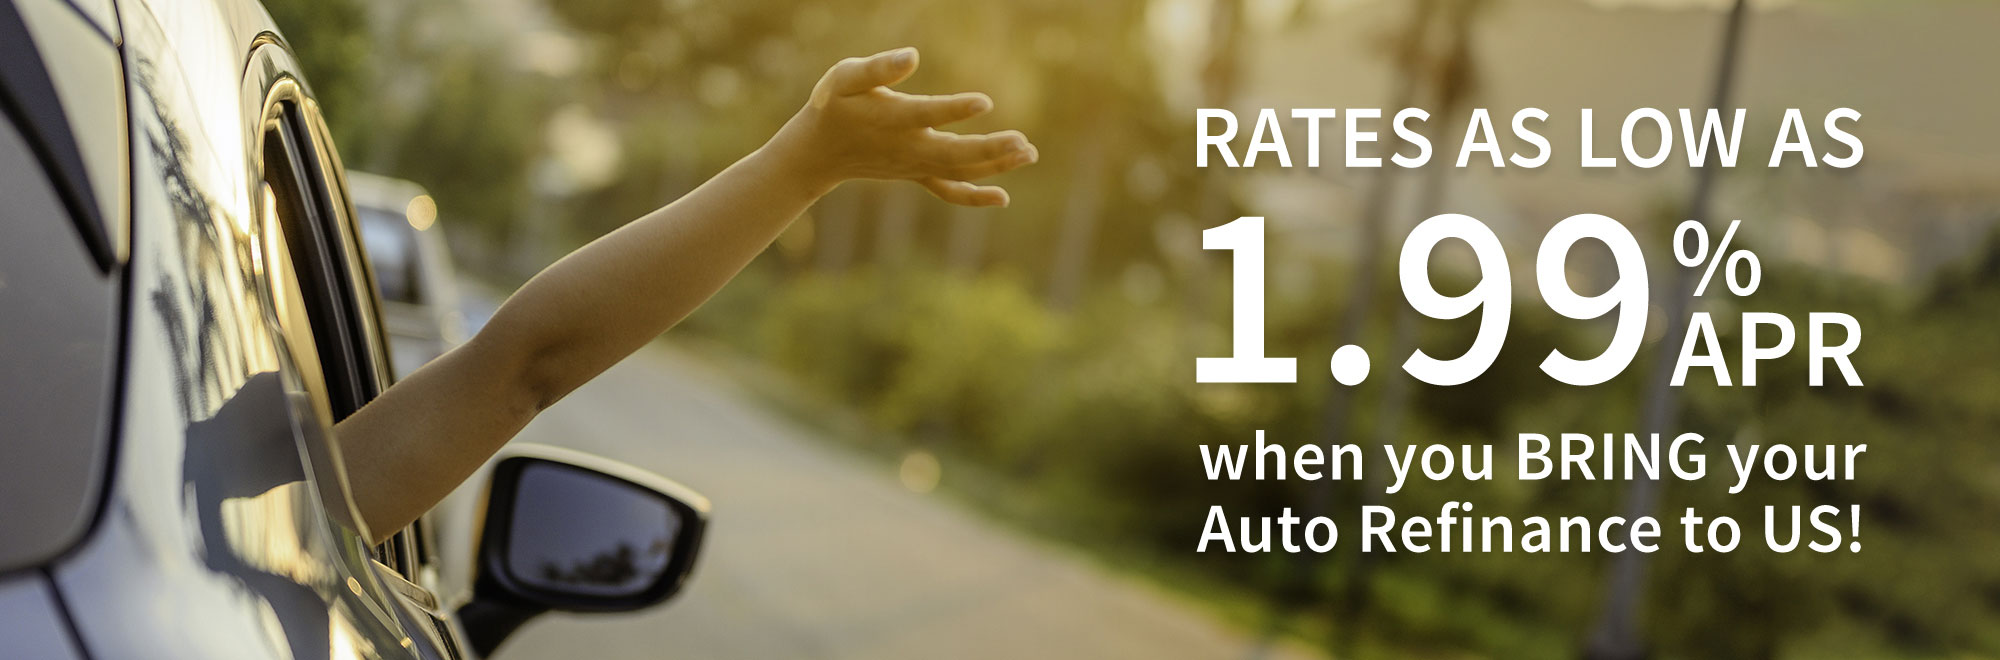 Rates as low as 1.99% APR when you bring your auto refinance to us